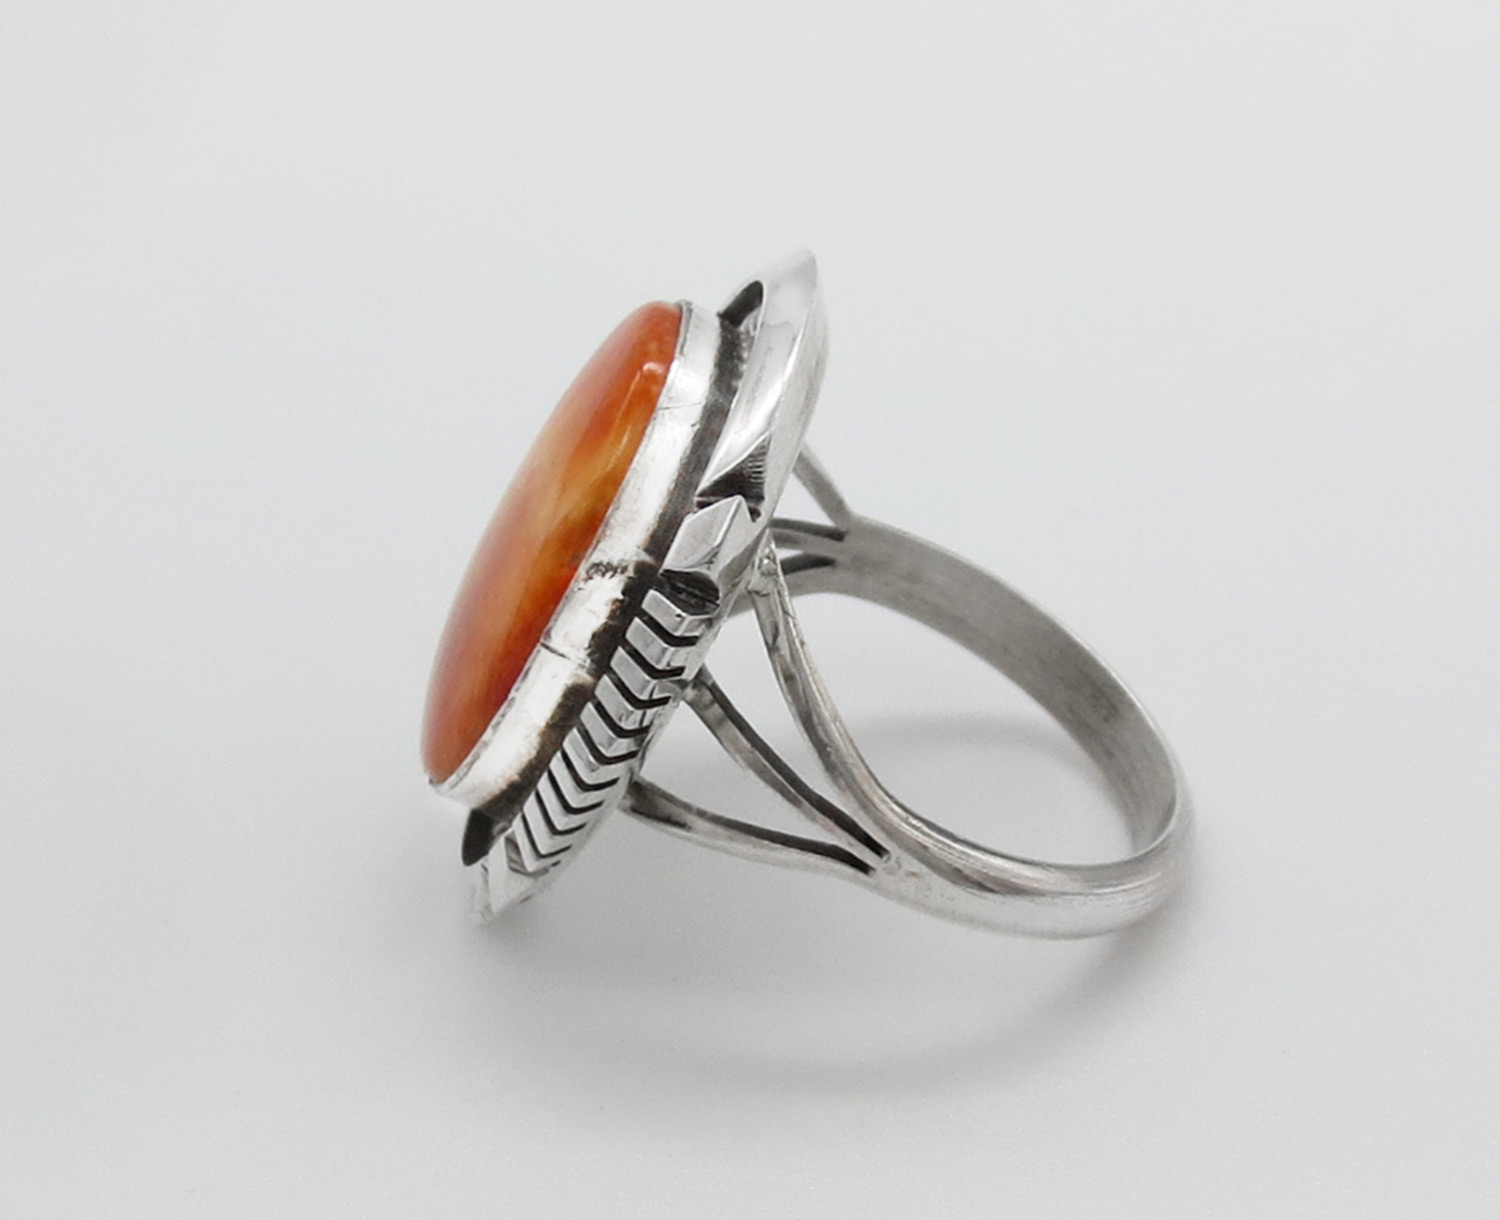 Image 1 of    Orange Spiny Oyster & Sterling Silver Ring Sz 9 Navajo Jewelry - 2107dt